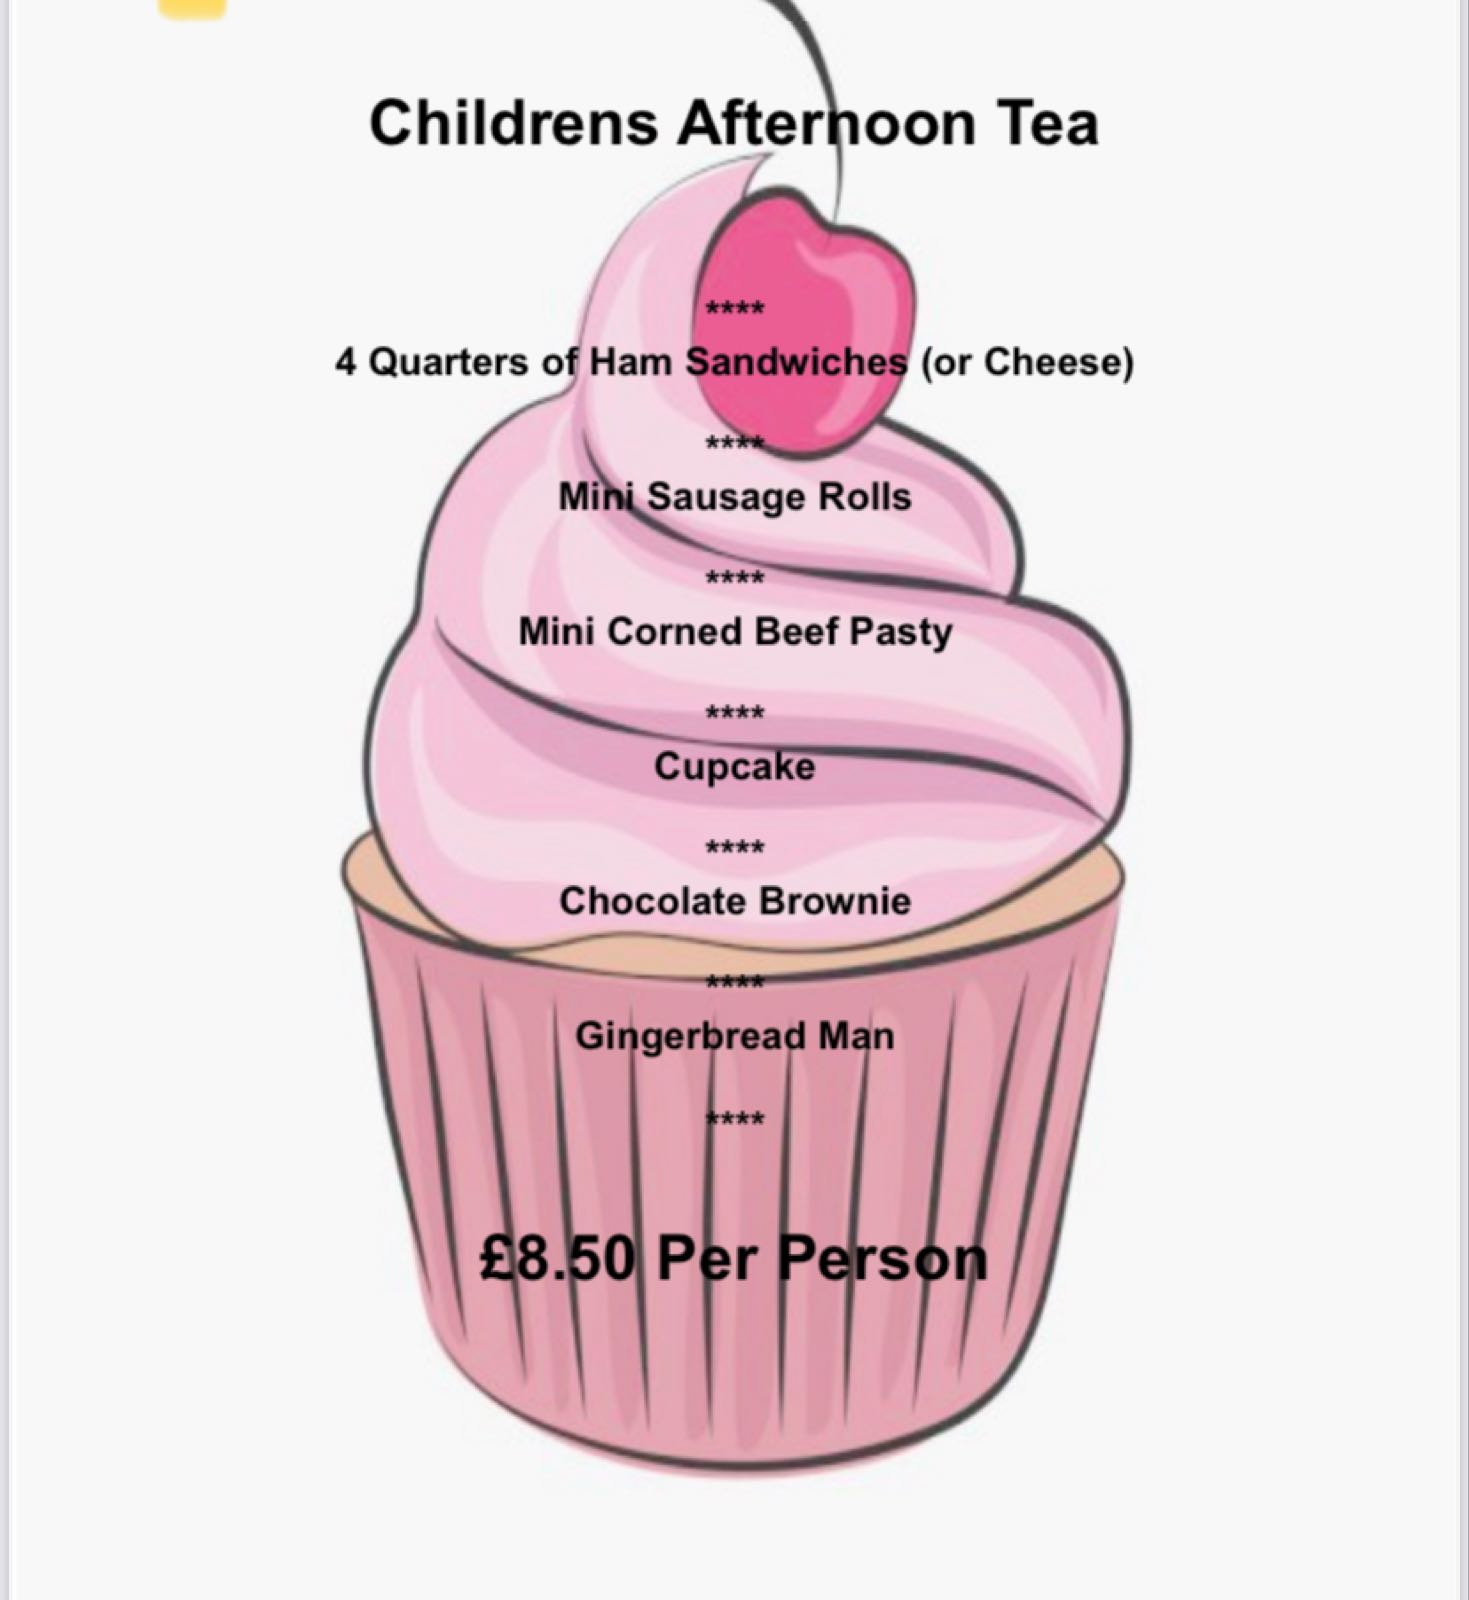 Childrens Afternoon Tea